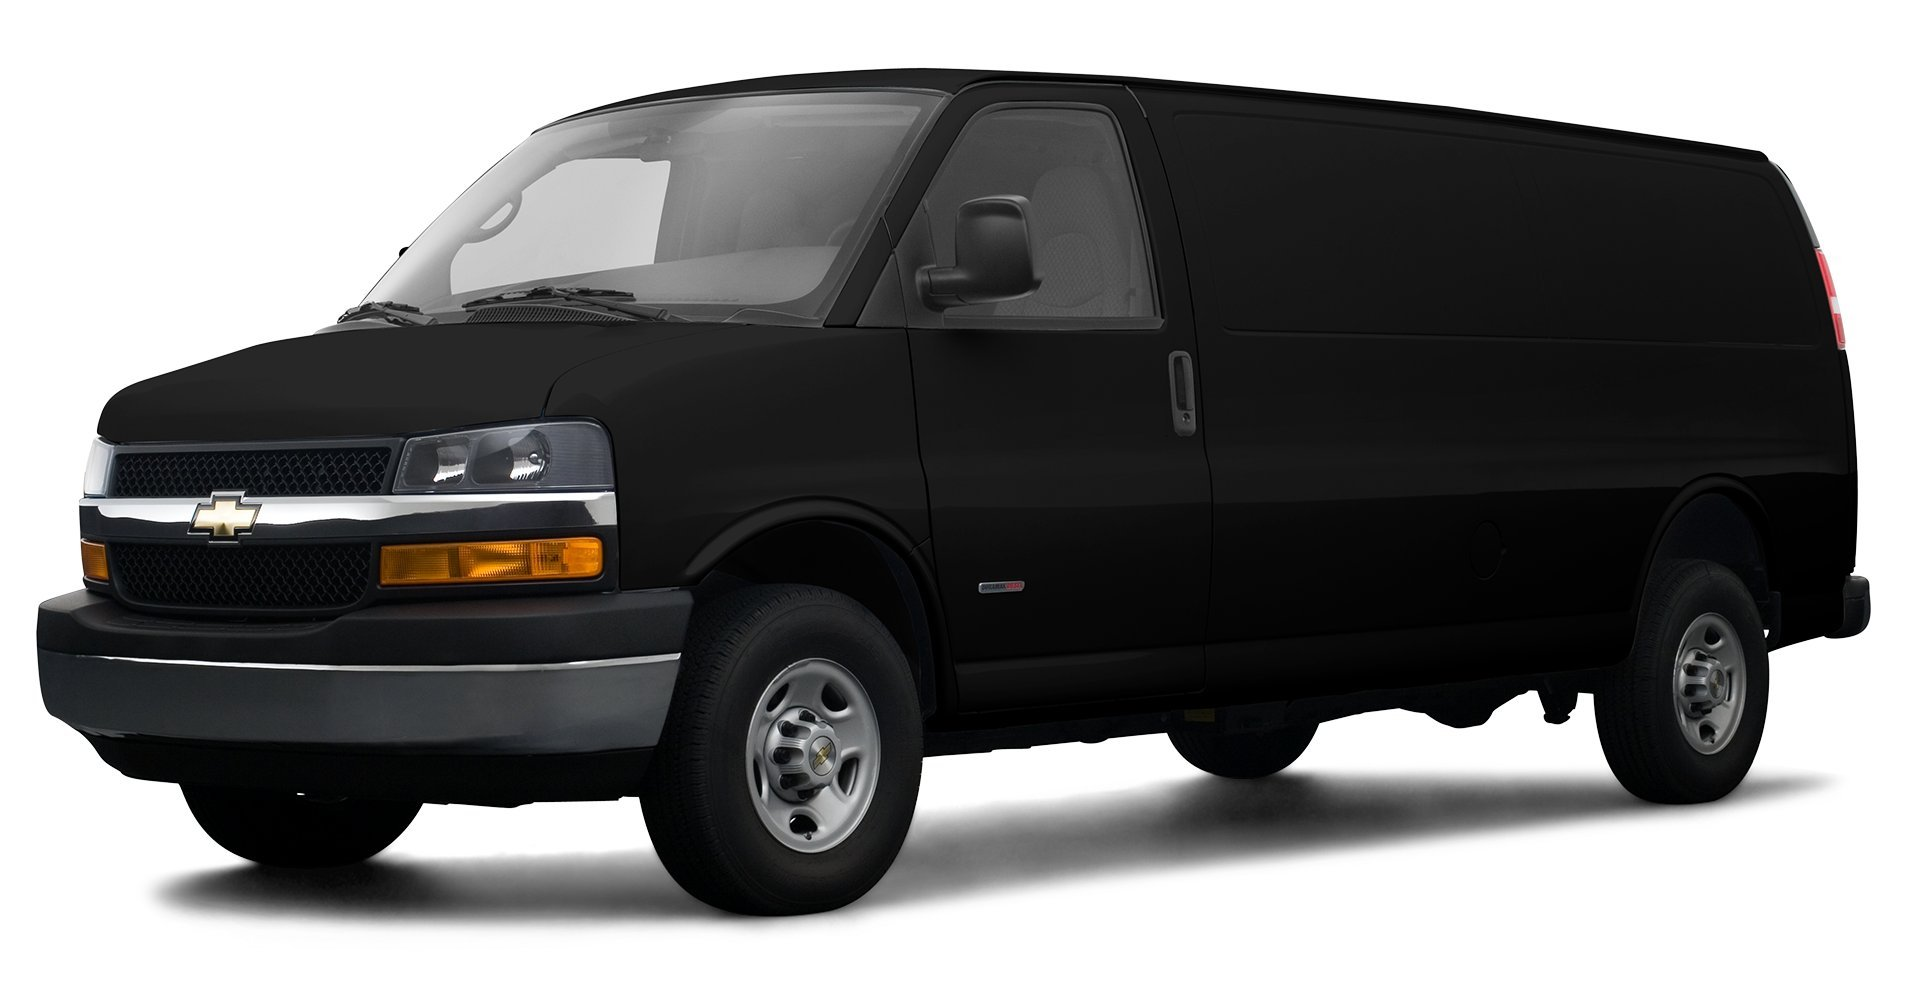 2008 gmc savana 3500 reviews images and. Black Bedroom Furniture Sets. Home Design Ideas